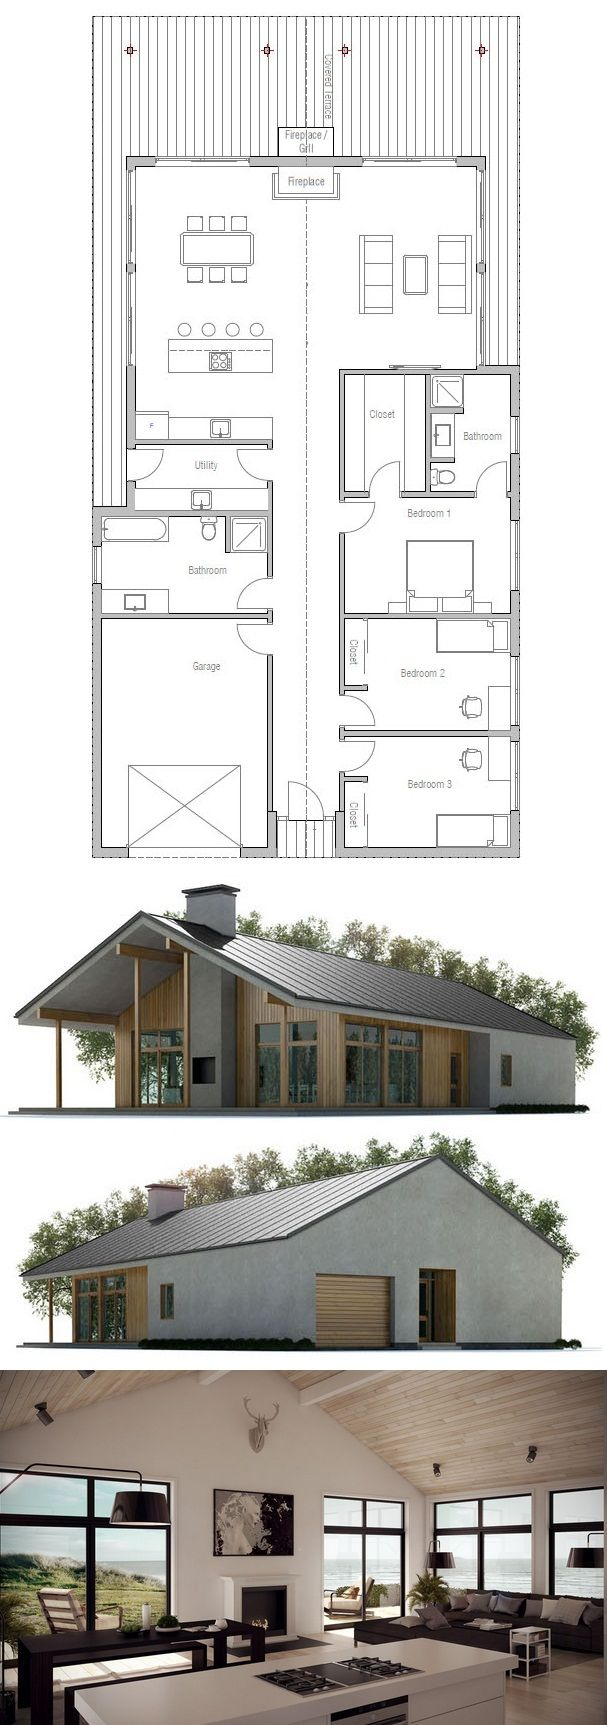 Different elevations - enlarge bedrooms and repurpose garage ........ but basic layout is reworkable and do-able.... Floor Plan